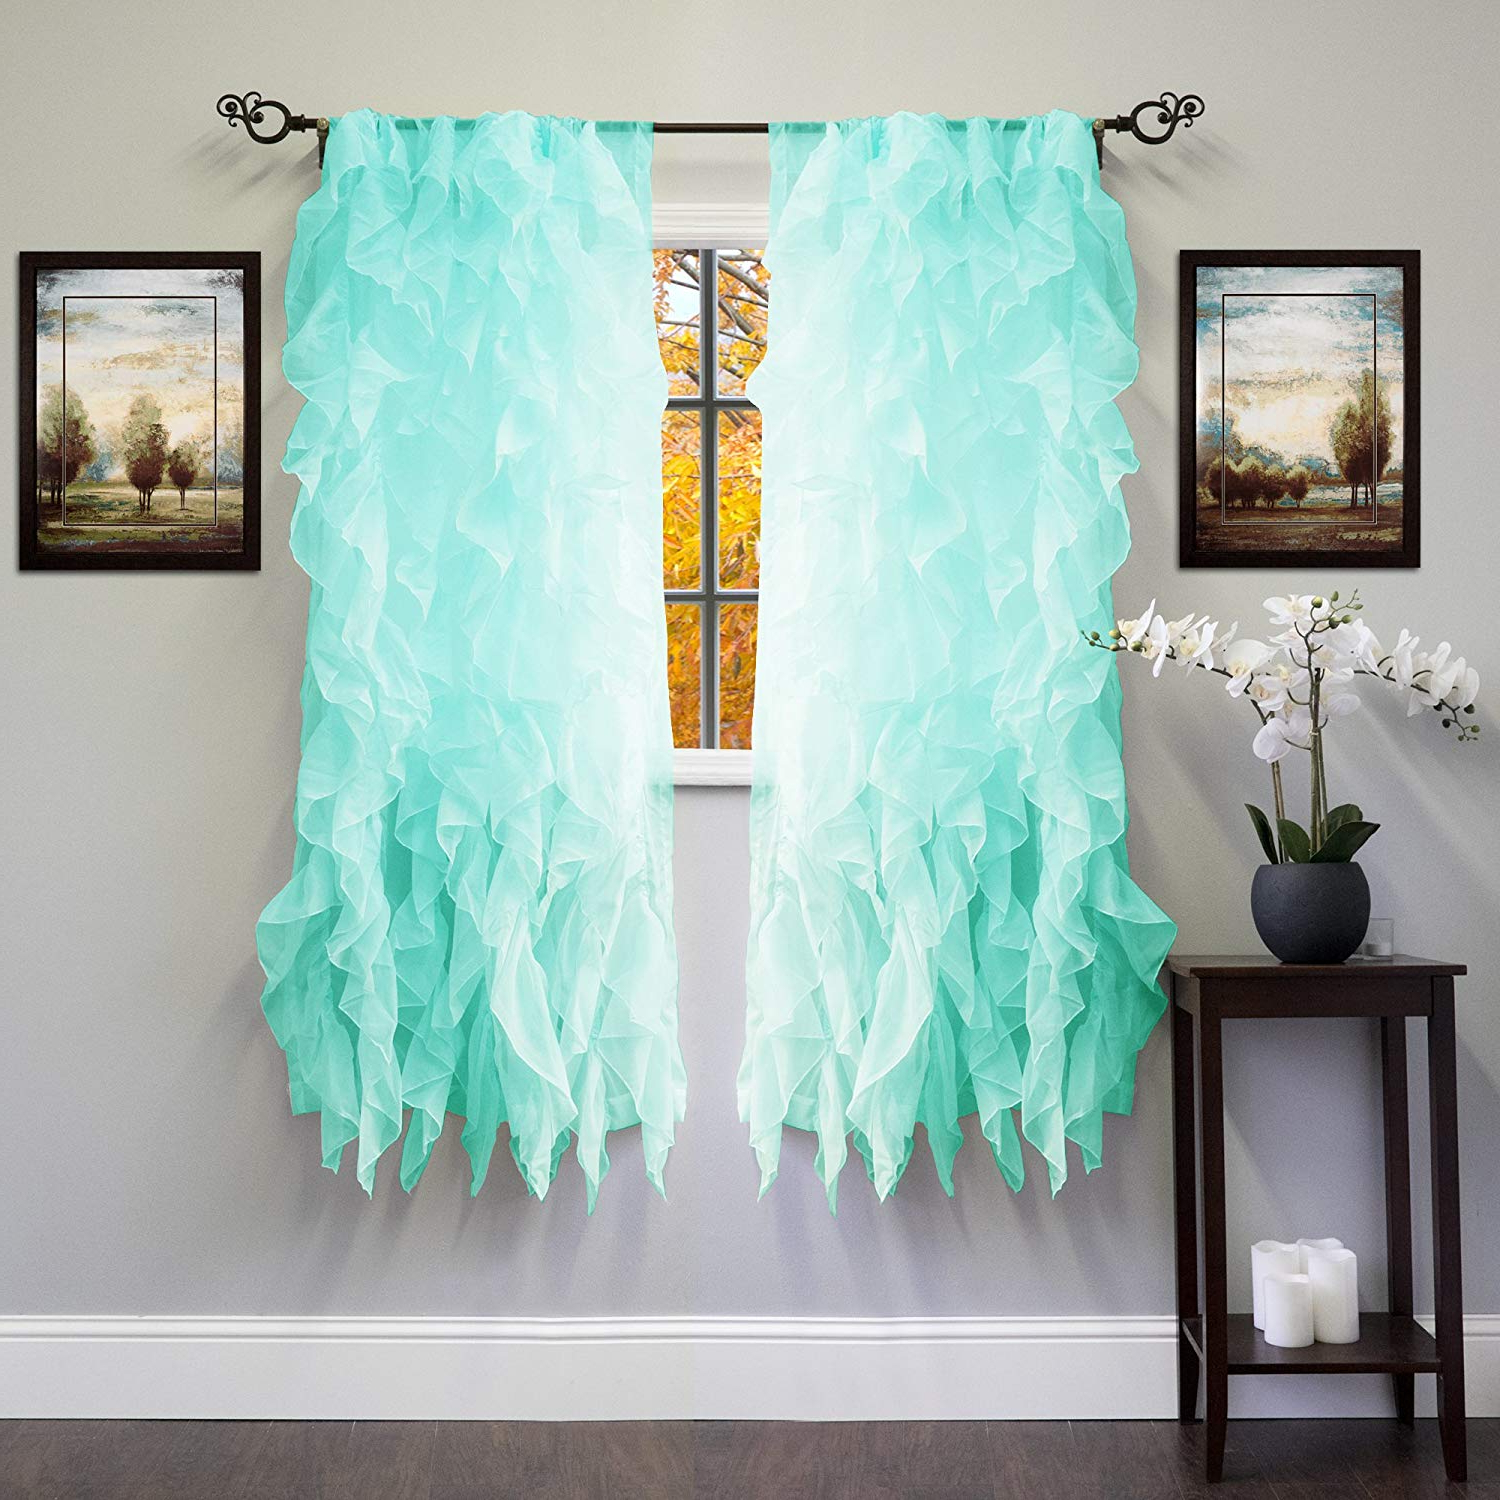 "Most Recently Released Sweet Home Collection Sheer Voile Vertical Ruffled Window Curtain Panel 50"" X 63"", 63"" X 50"", Sea, 2 Piece Regarding Navy Vertical Ruffled Waterfall Valance And Curtain Tiers (Gallery 13 of 20)"